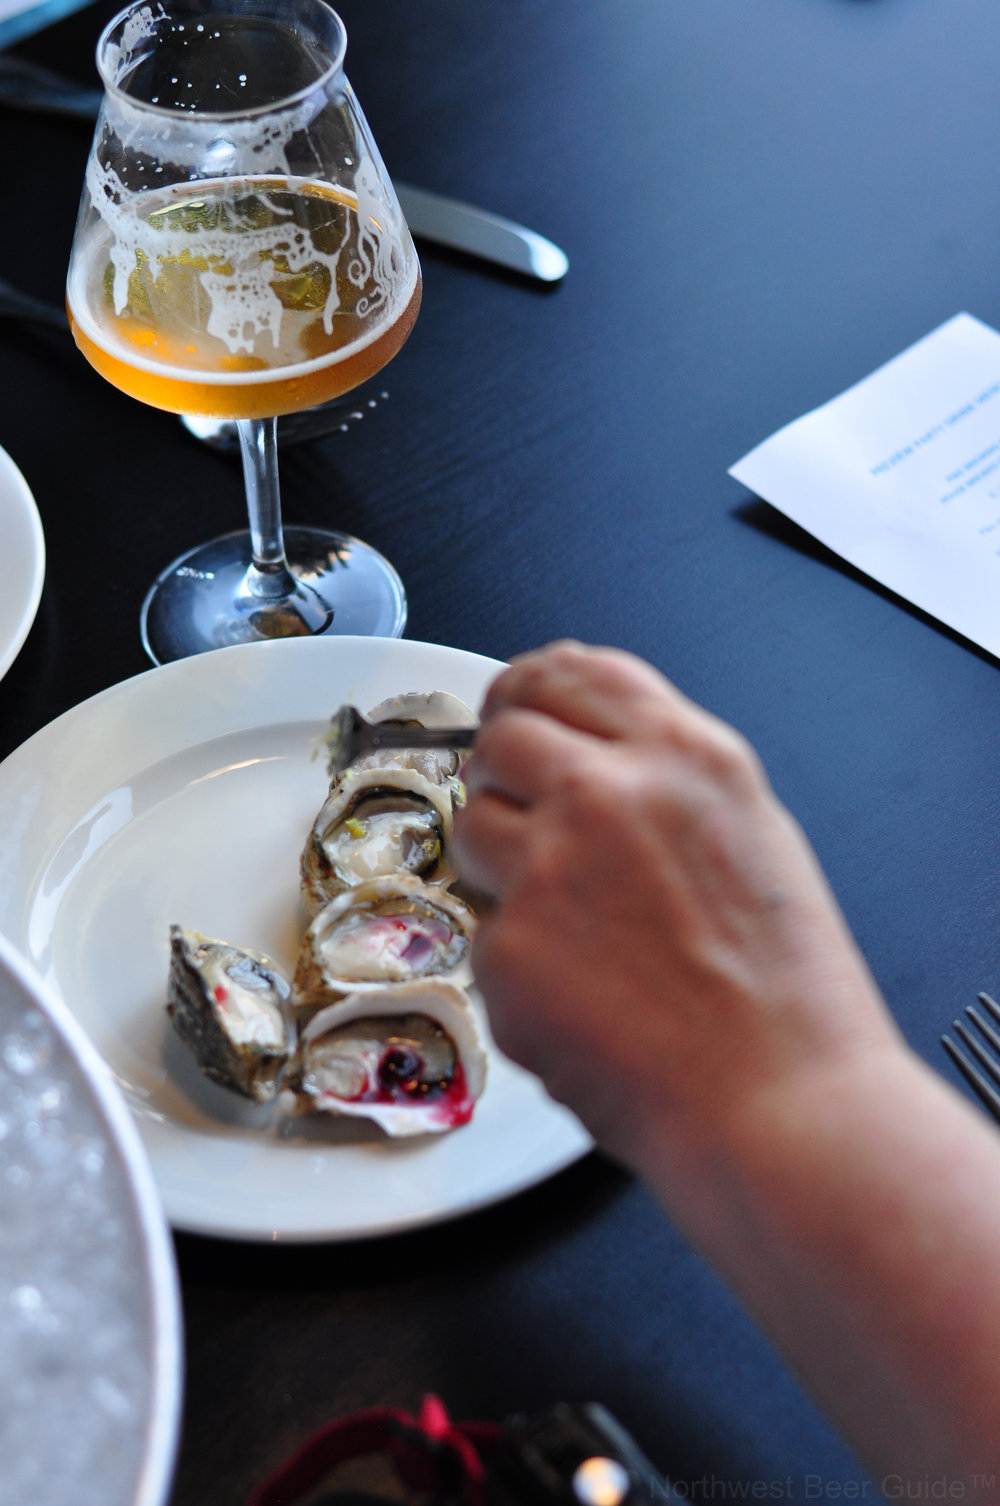 """There's more than one way to enjoy an oyster."